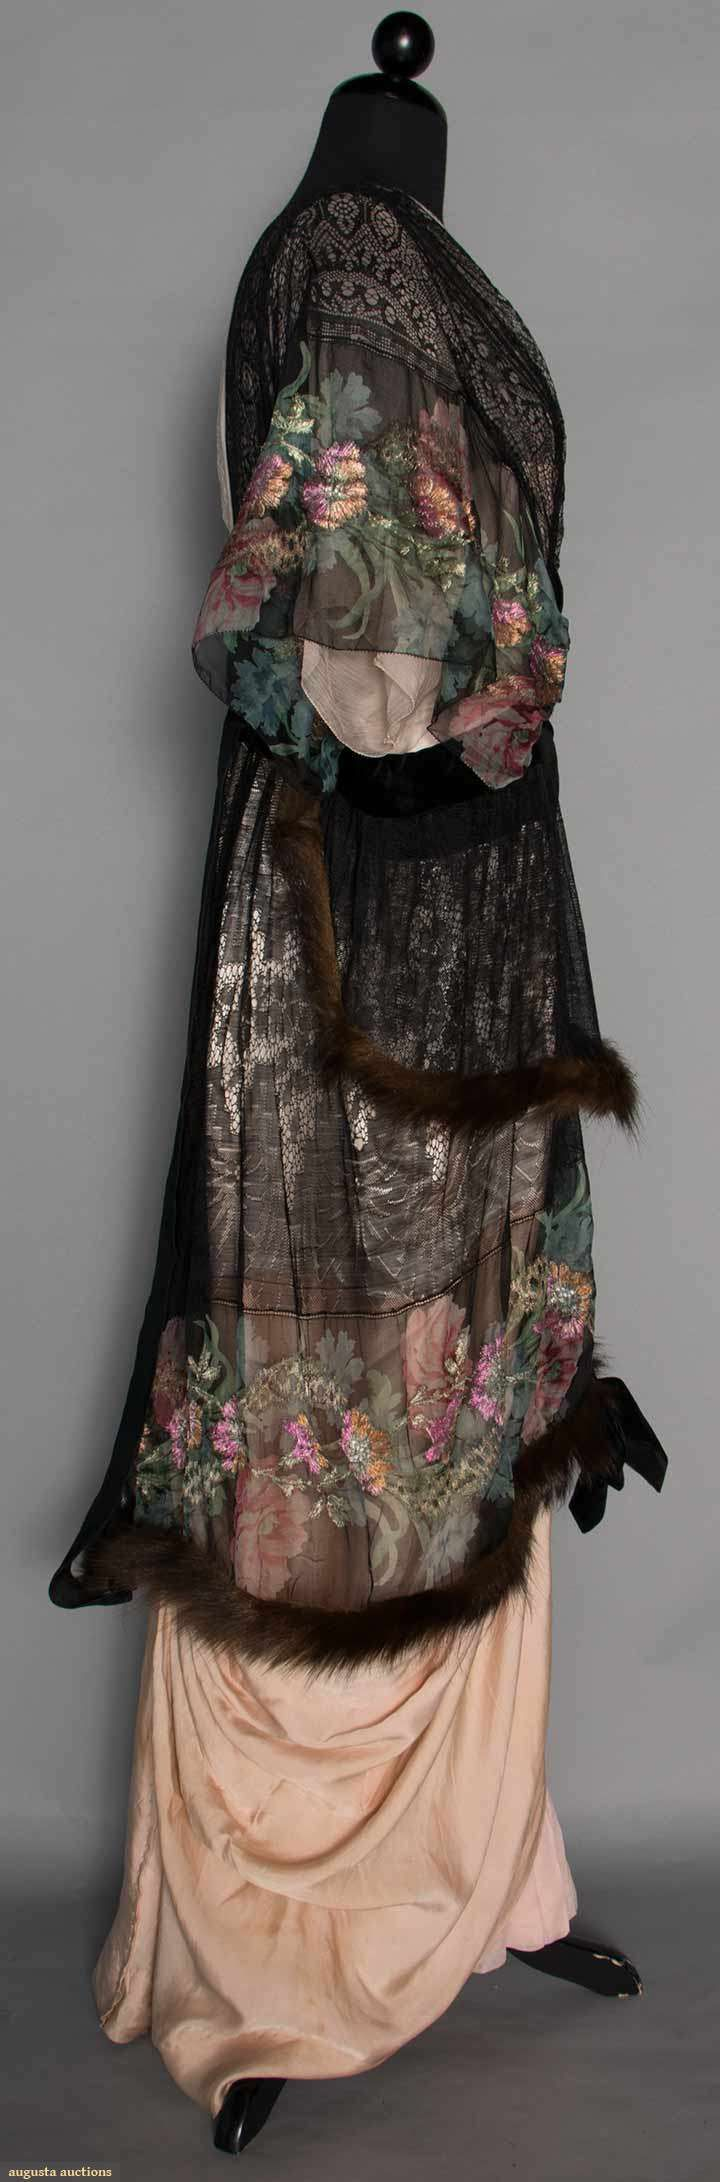 Evening Gown (image 2) | 1913 | brocaded chiffon, lace, velvet, fur | Augusta Auctions | November 12, 2014/Lot 286